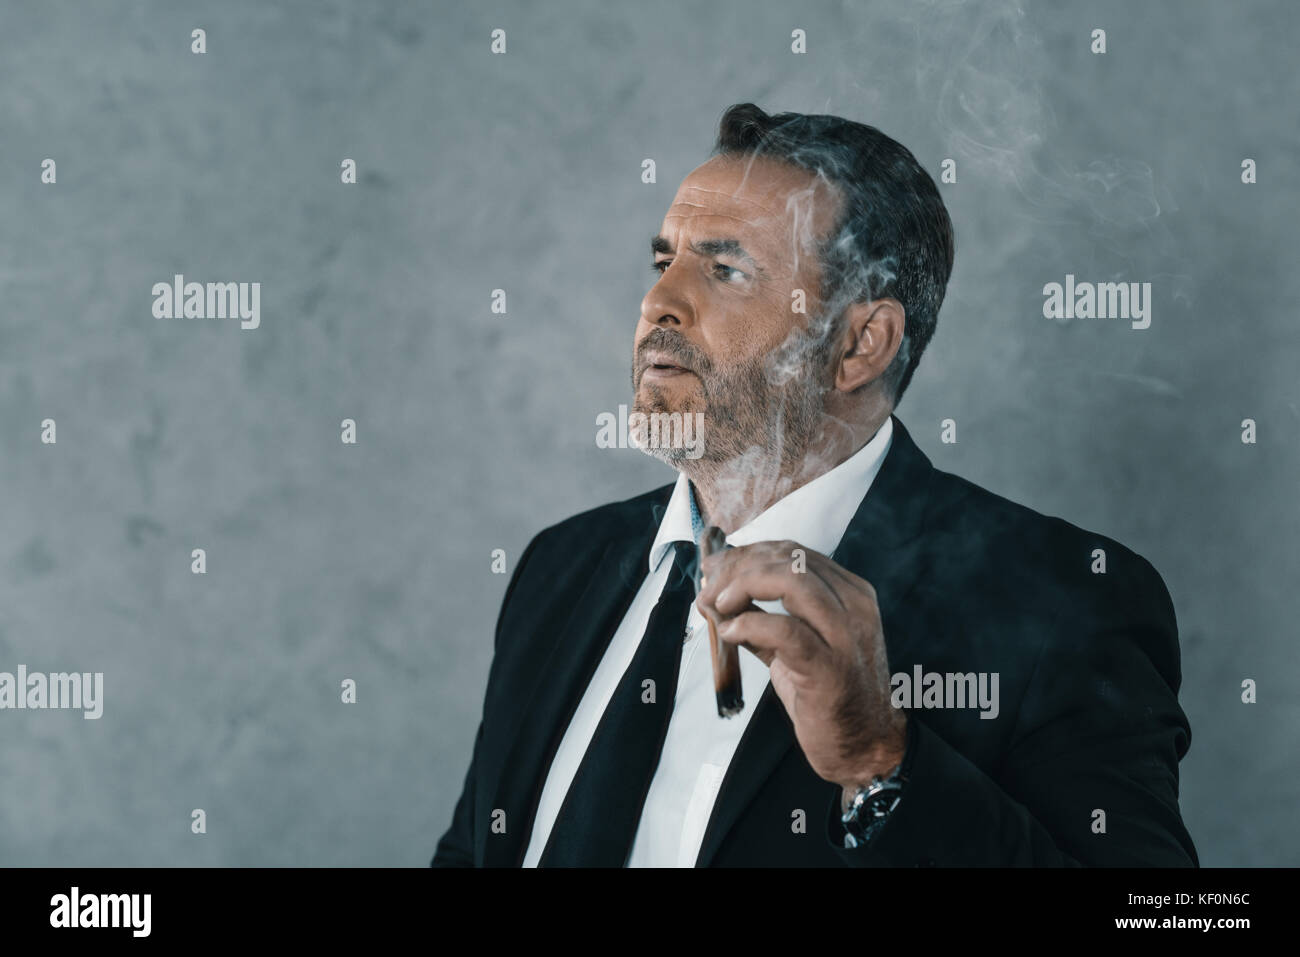 Businessman Smoking Cigar Stock Photos & Businessman